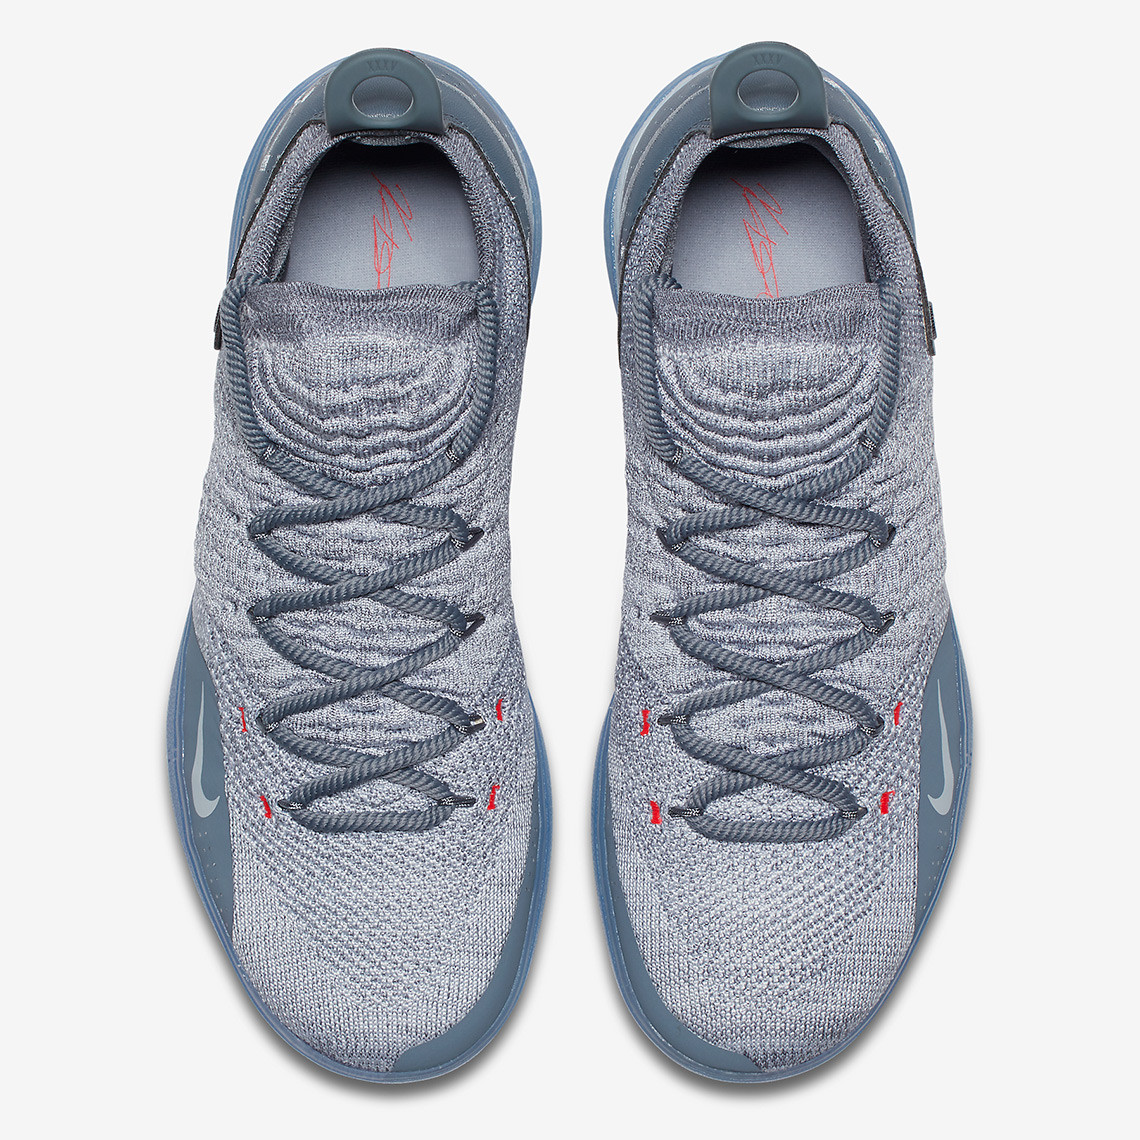 50dceee09374 Nike KD 11 Cool Grey drops this September